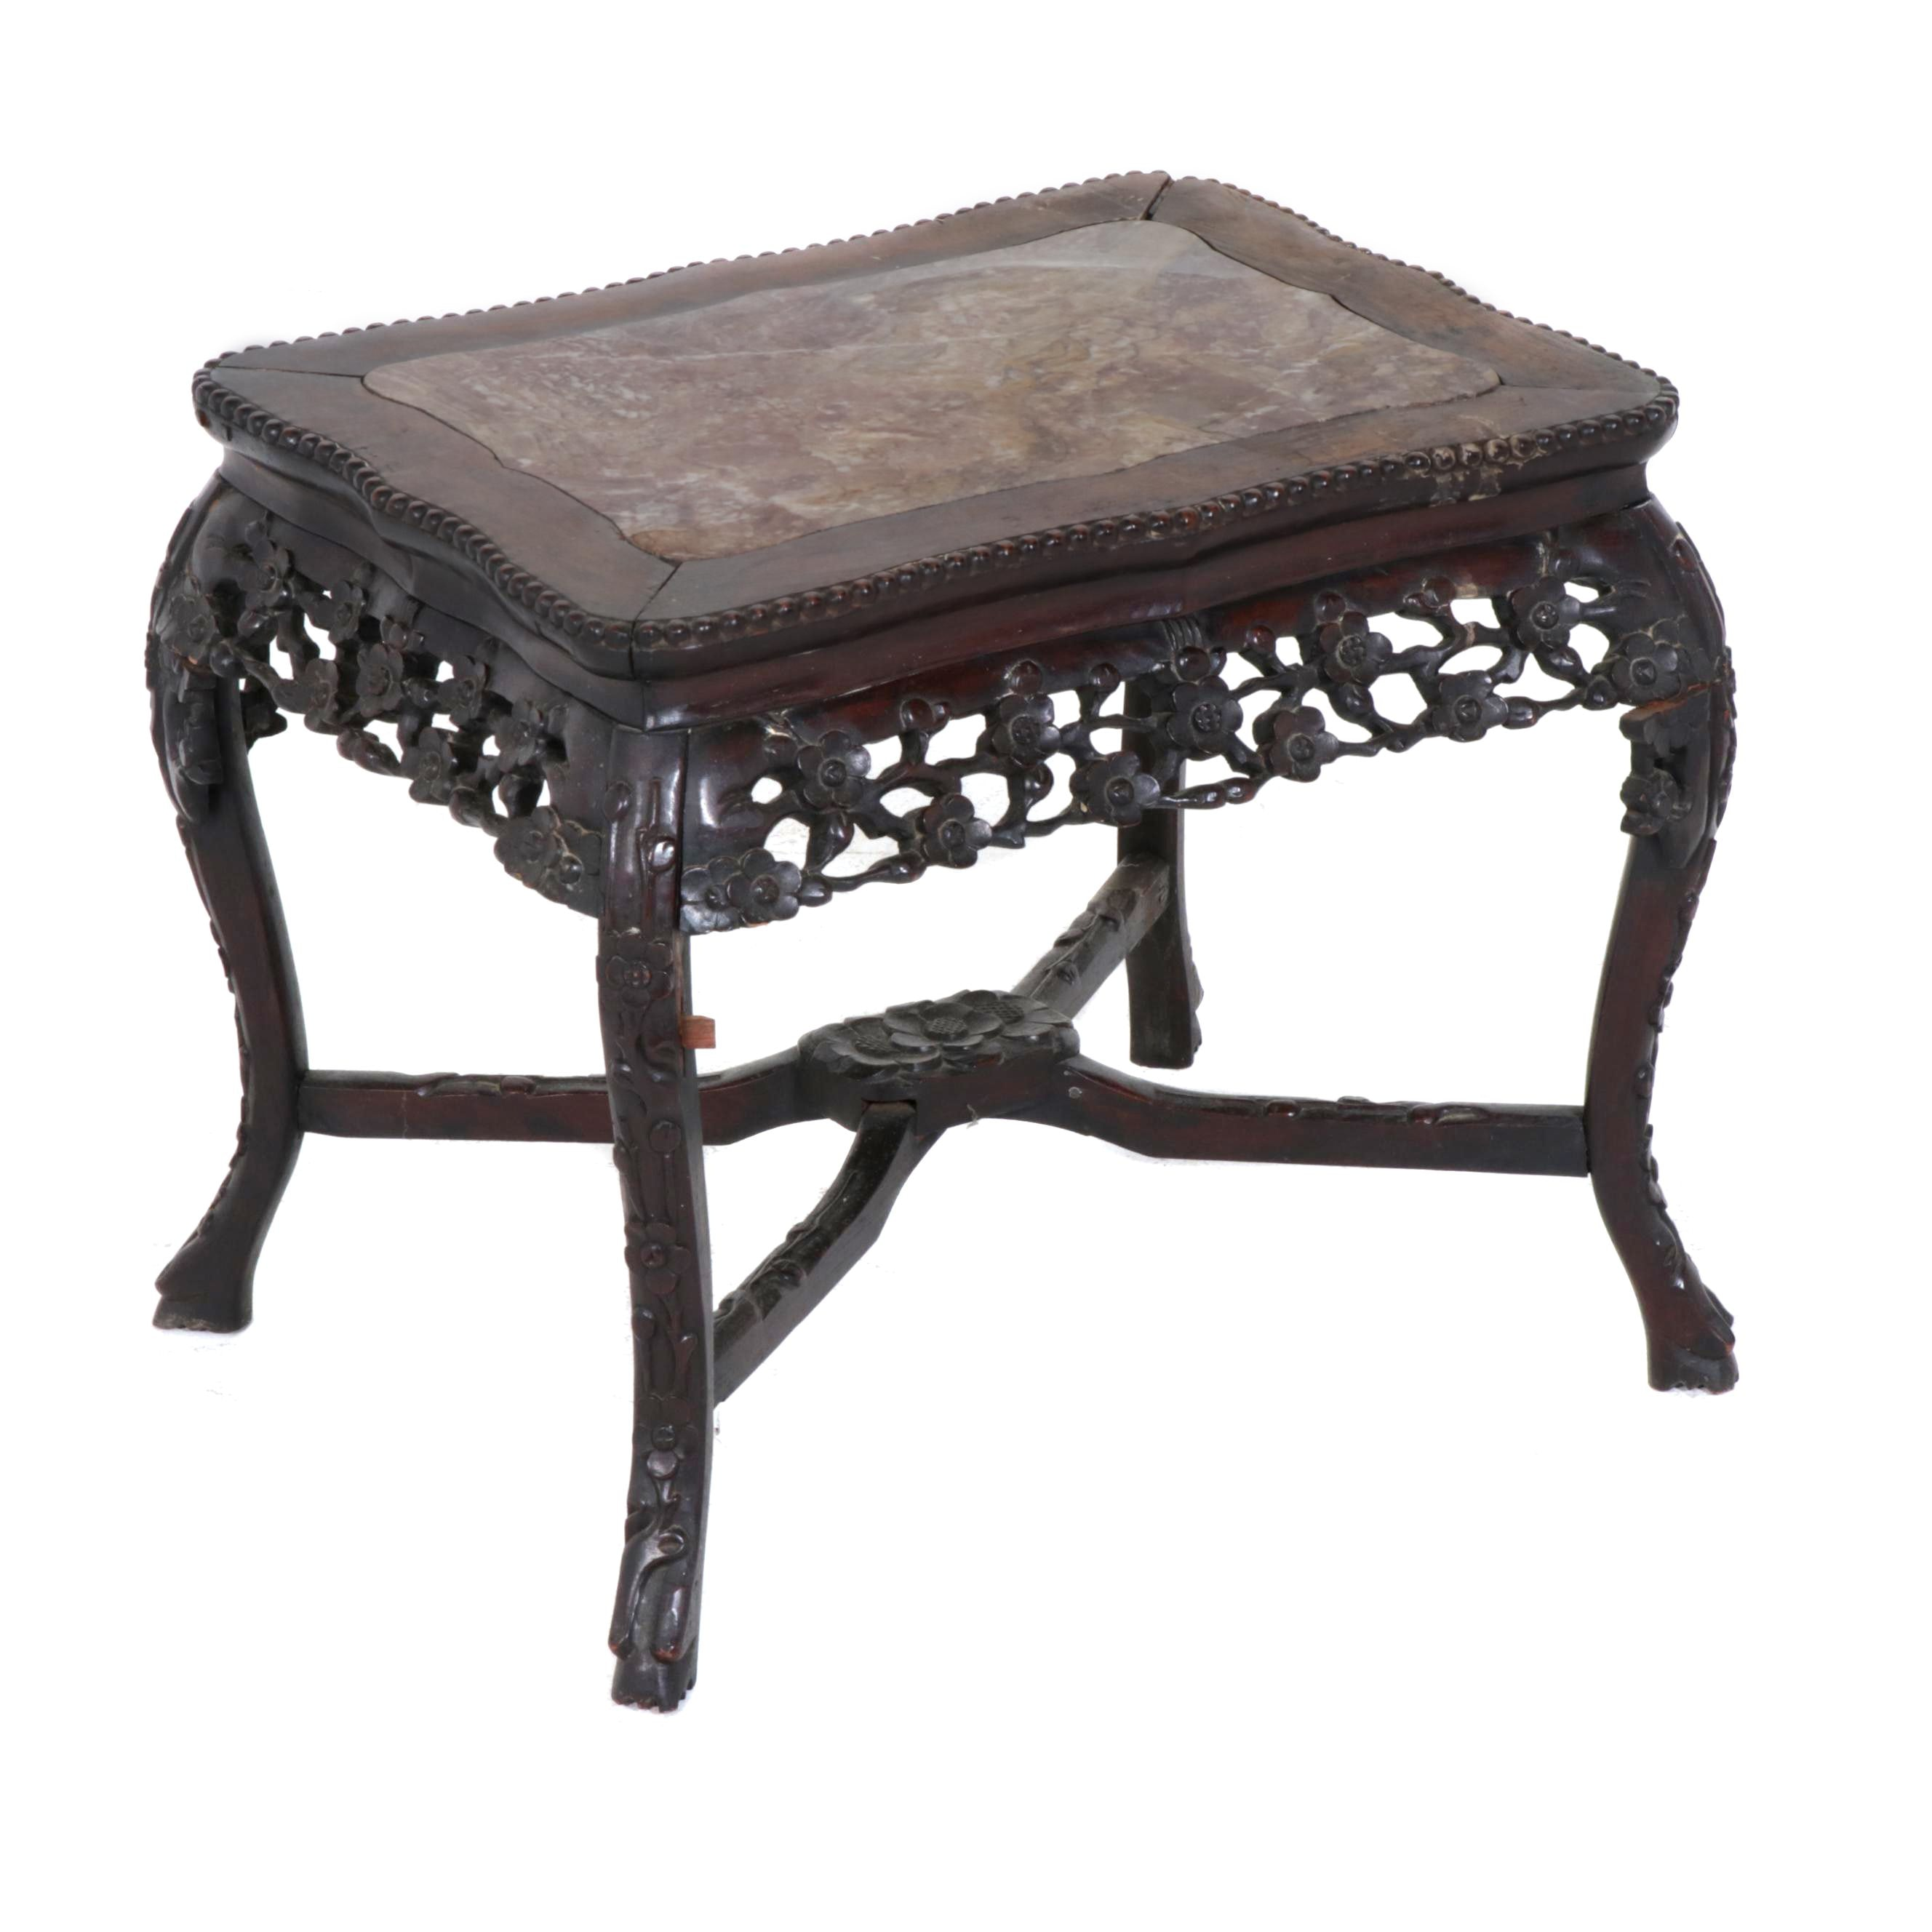 Chinese Carved Rosewood and Marble Top Stand, Late 19th Century